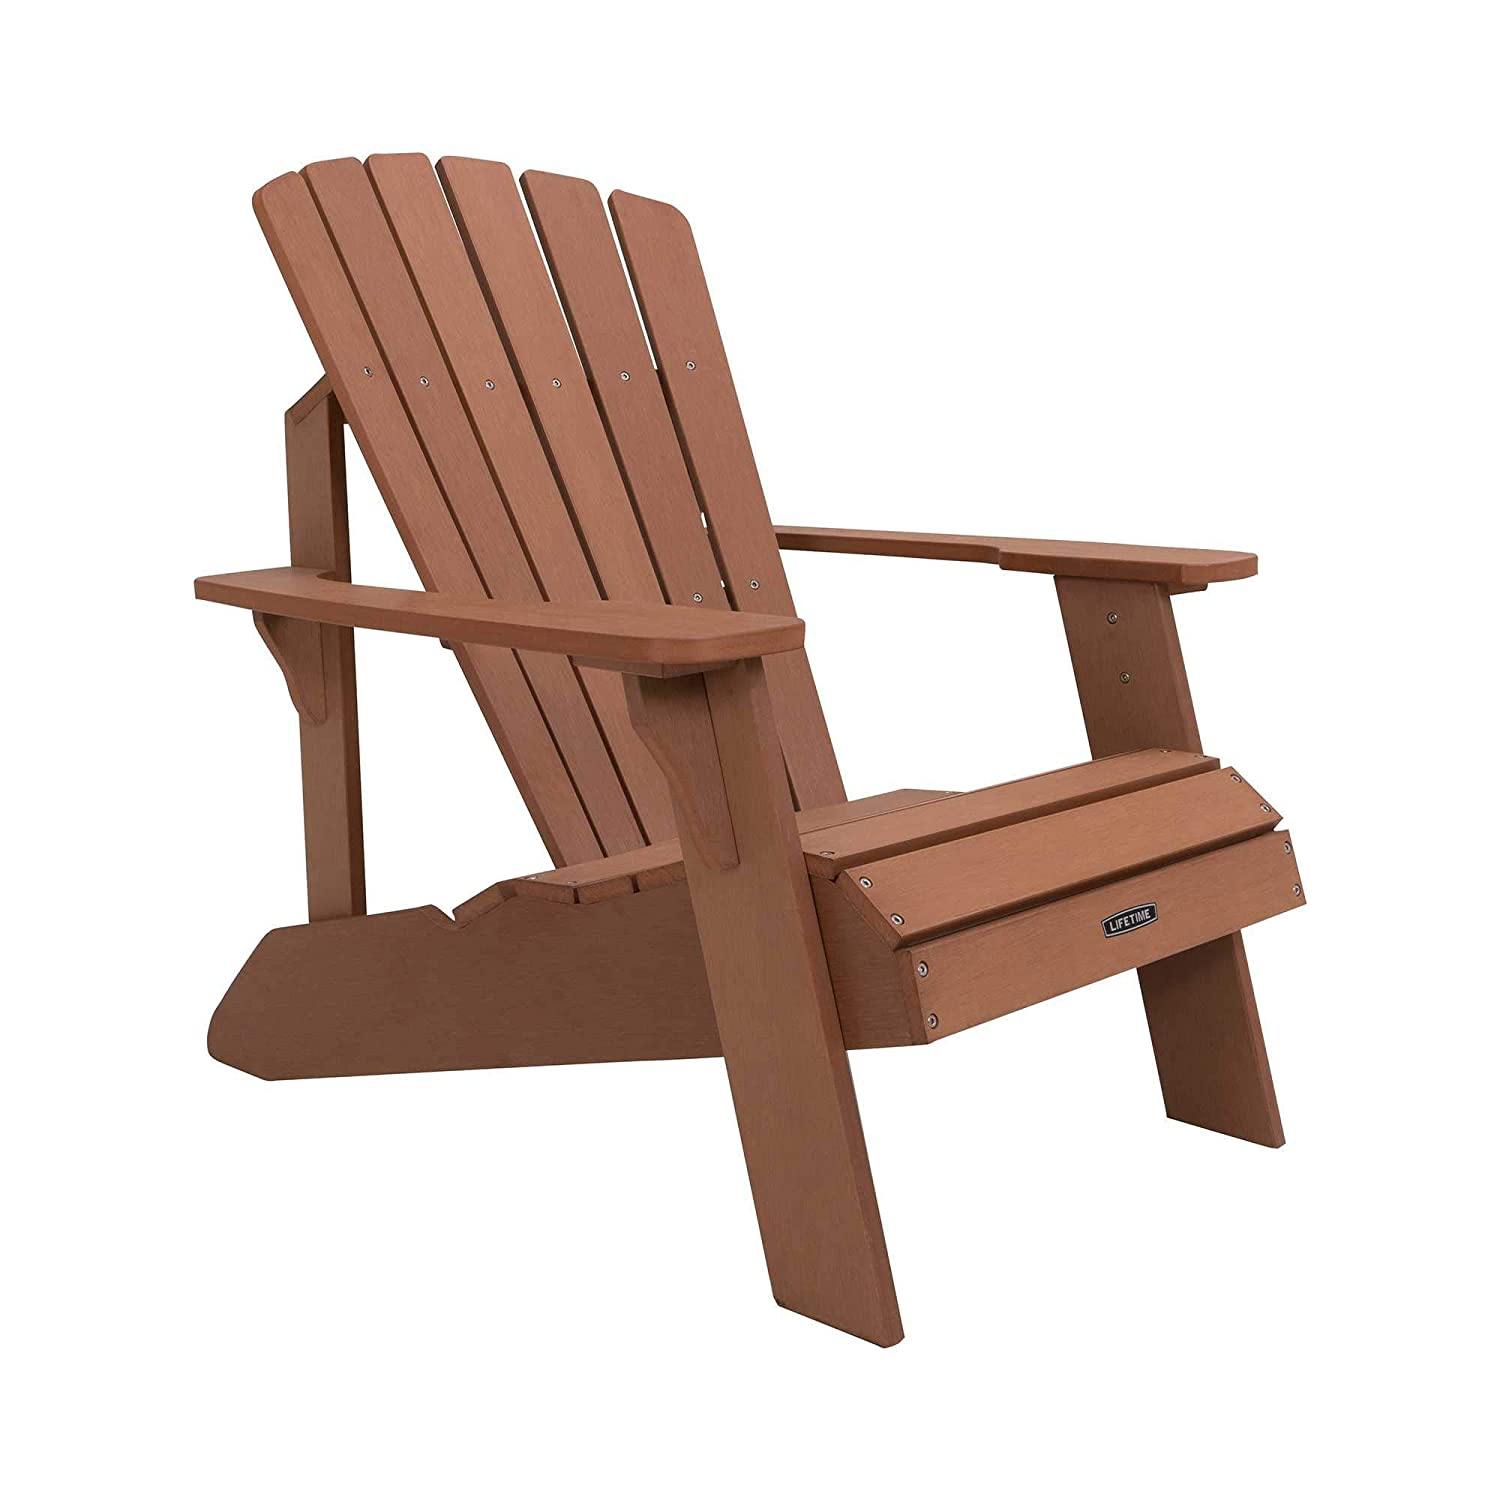 Top 10 Best Resin Adirondack Chairs